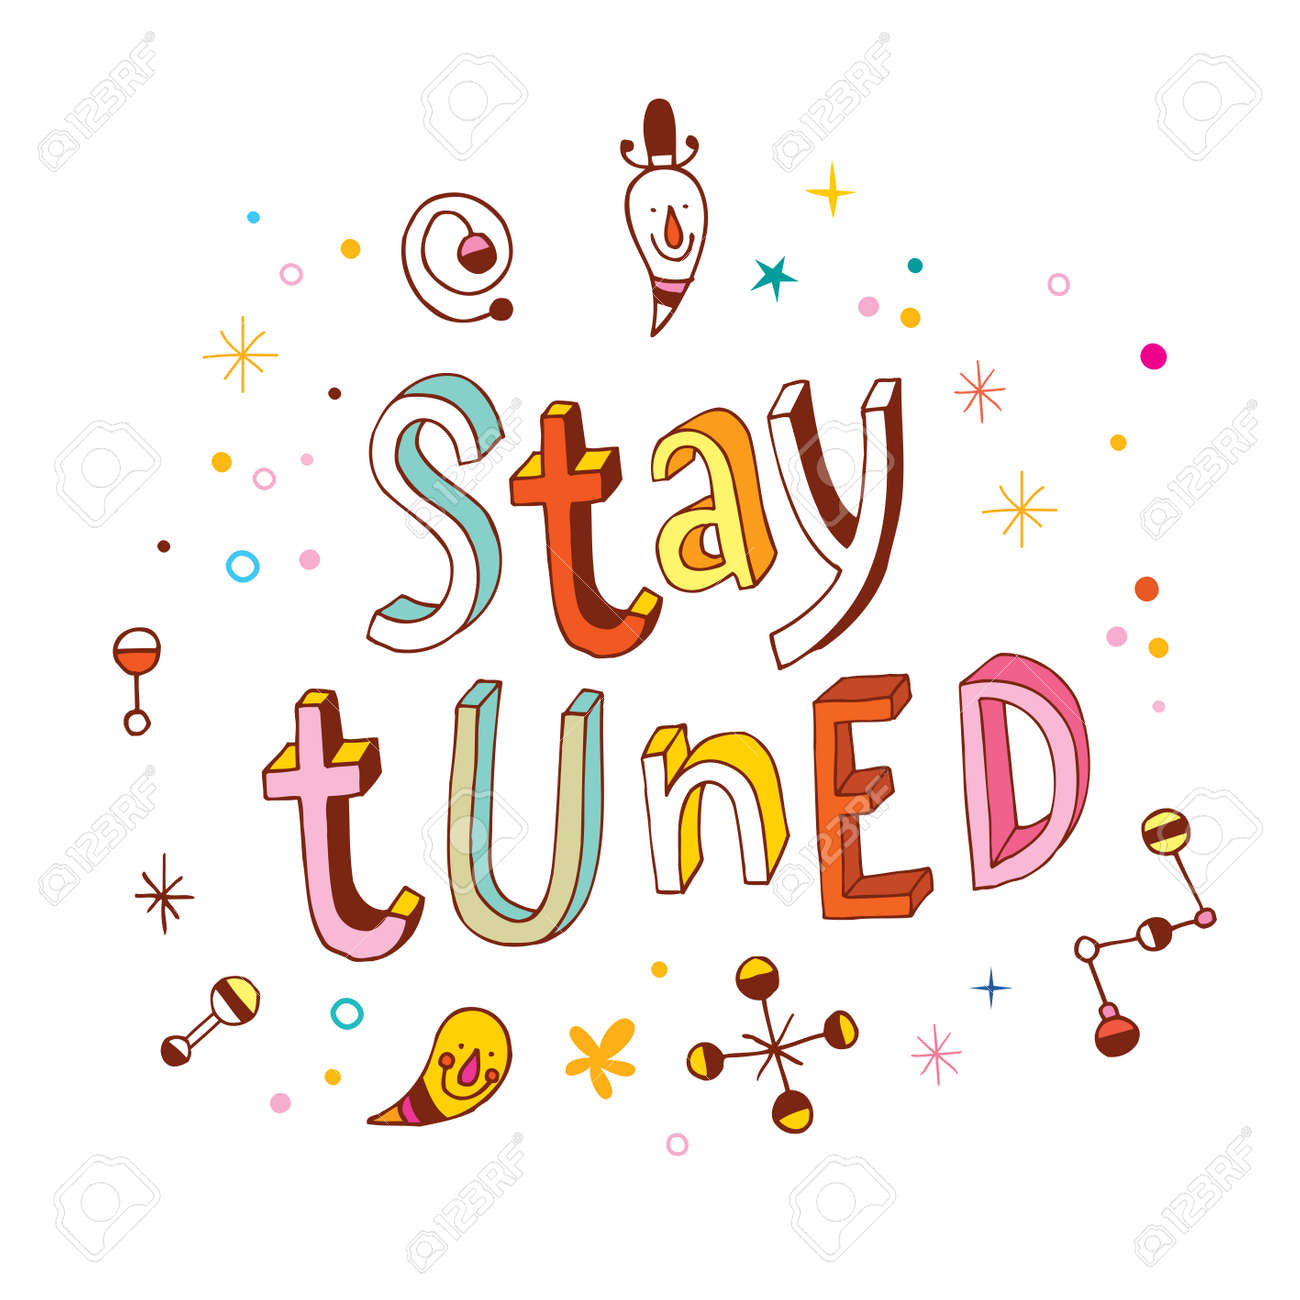 stay tuned royalty free cliparts, vectors, and stock illustration